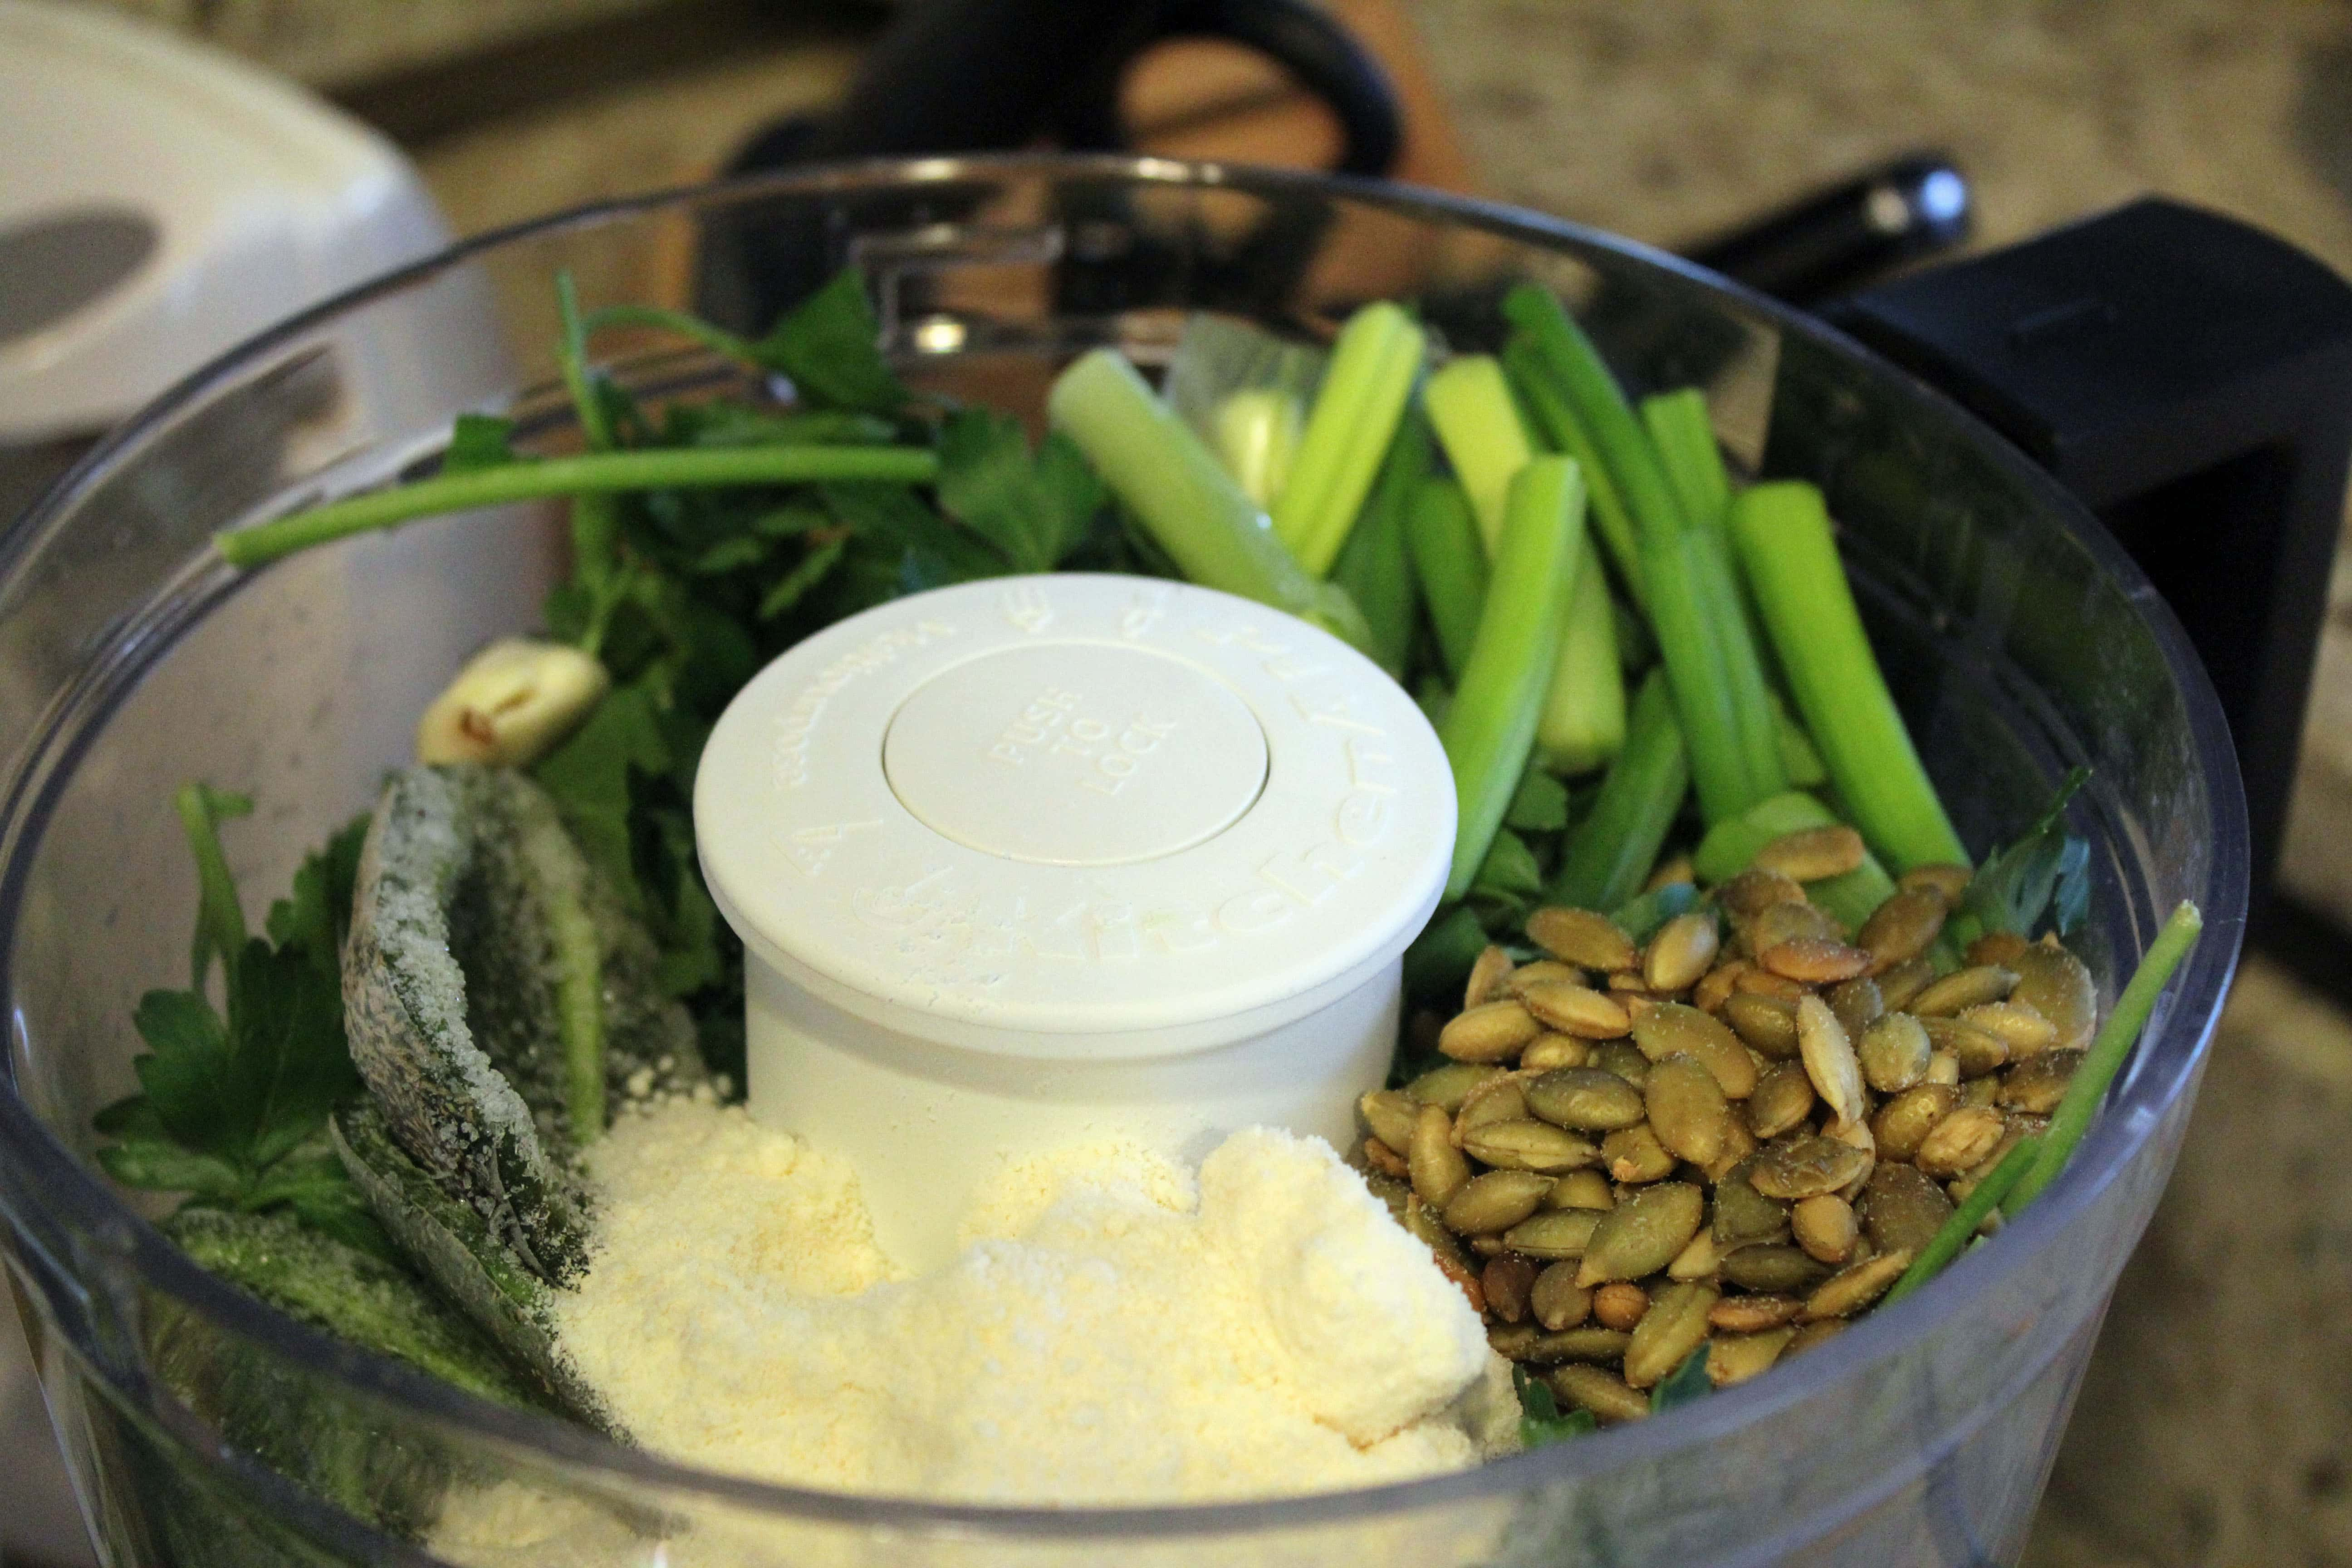 Add major ingredients to food processor